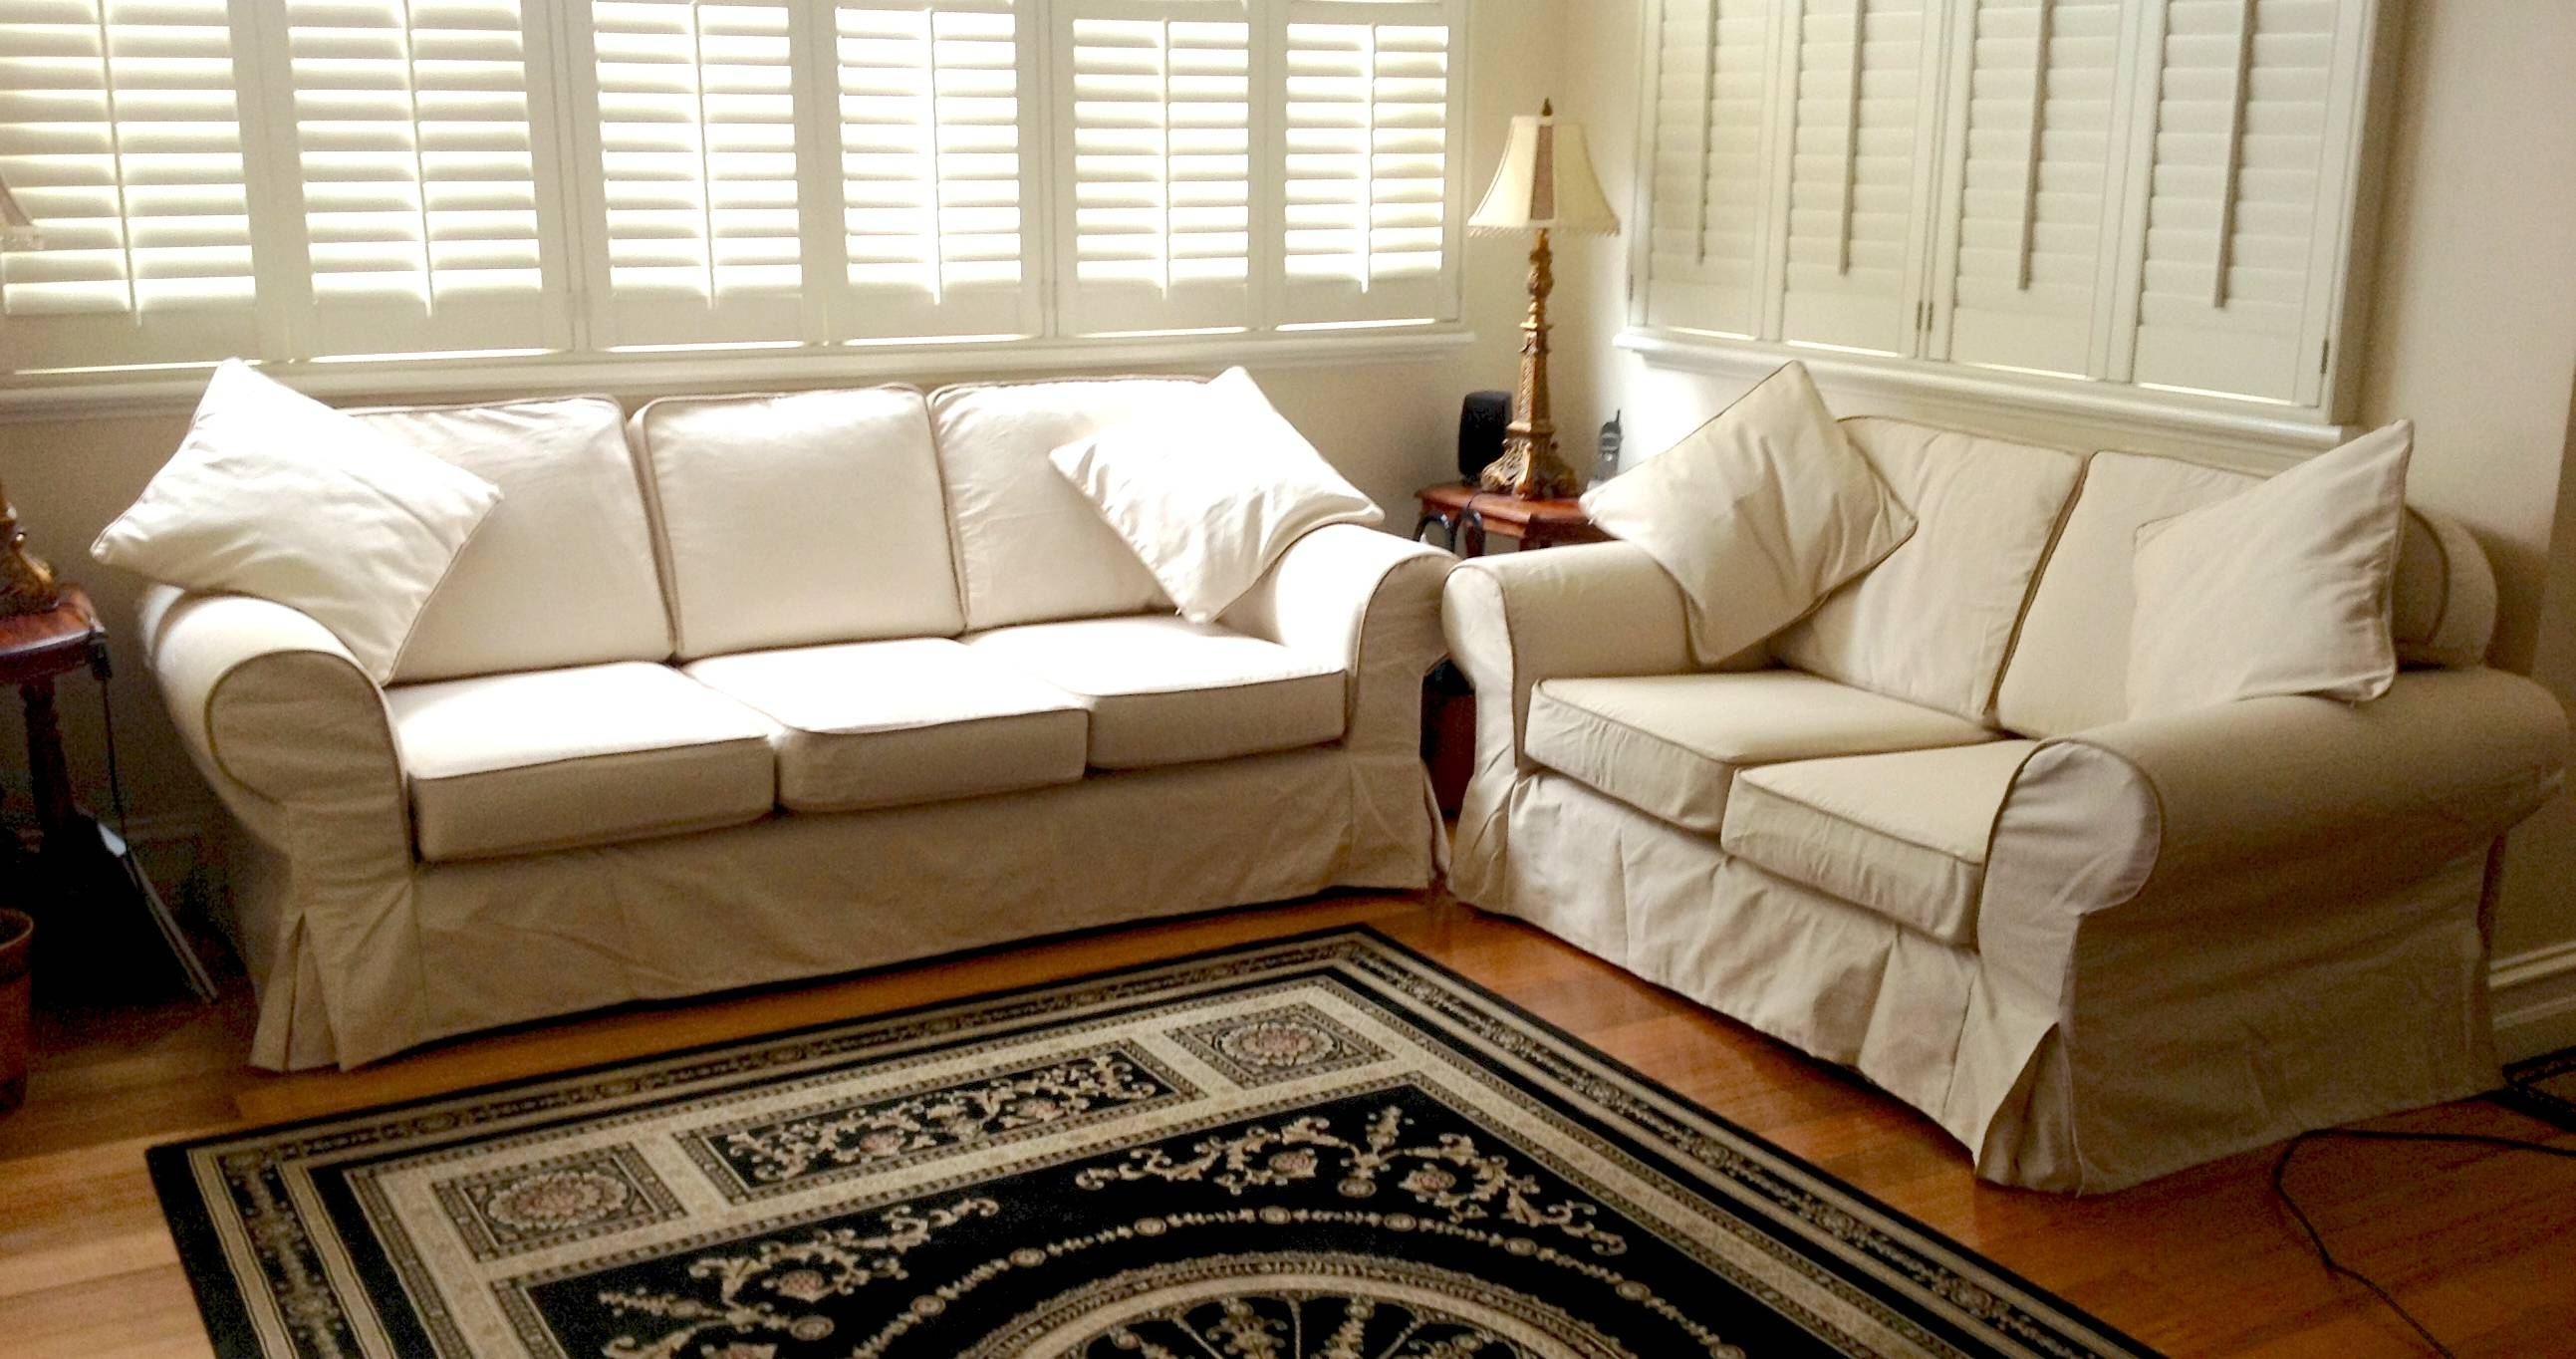 Custom Slipcovers And Couch Cover For Any Sofa Online Inside Sofa Settee Covers (View 7 of 30)